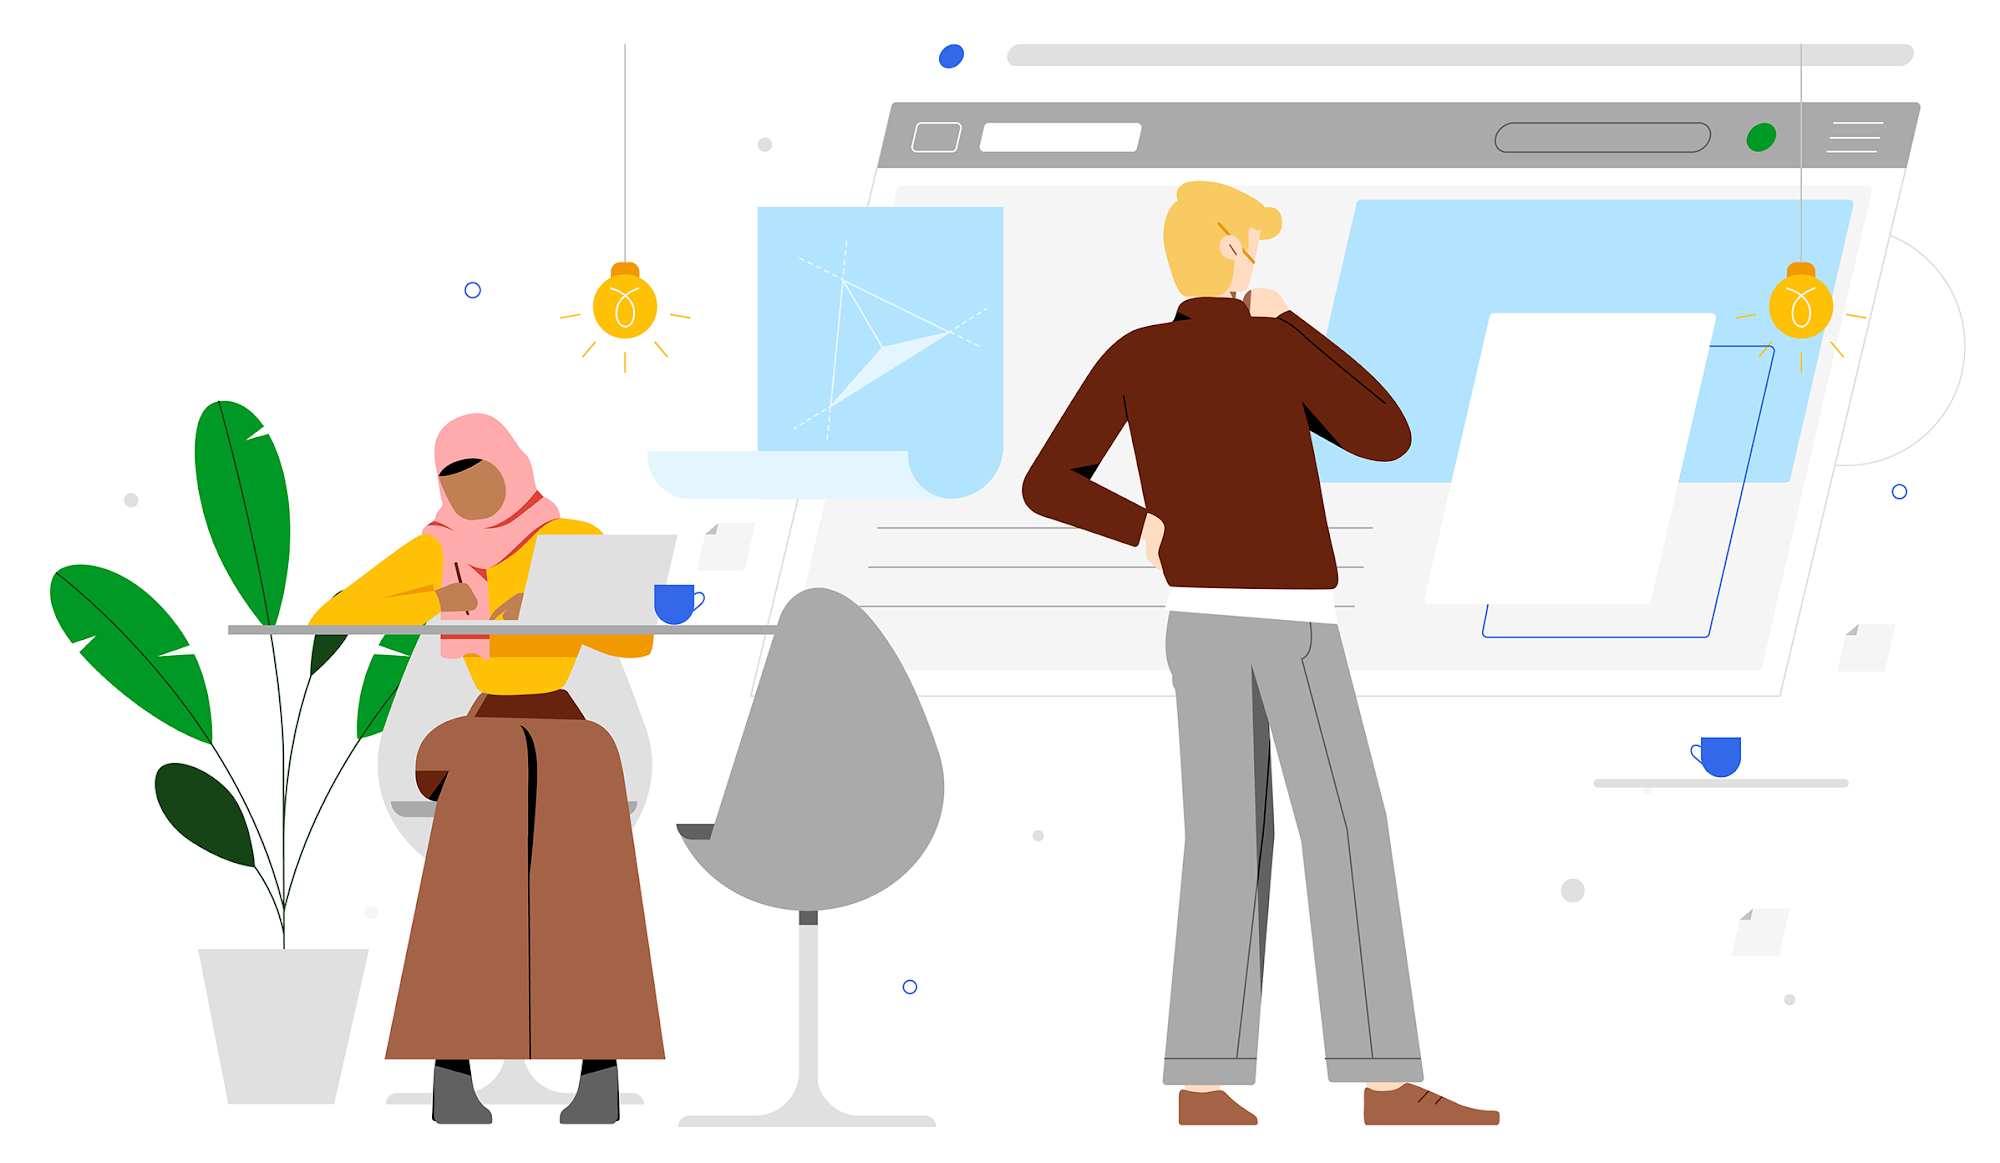 Woman in hijab takes notes at her desk while man scrutinizes content in an abstract browser window